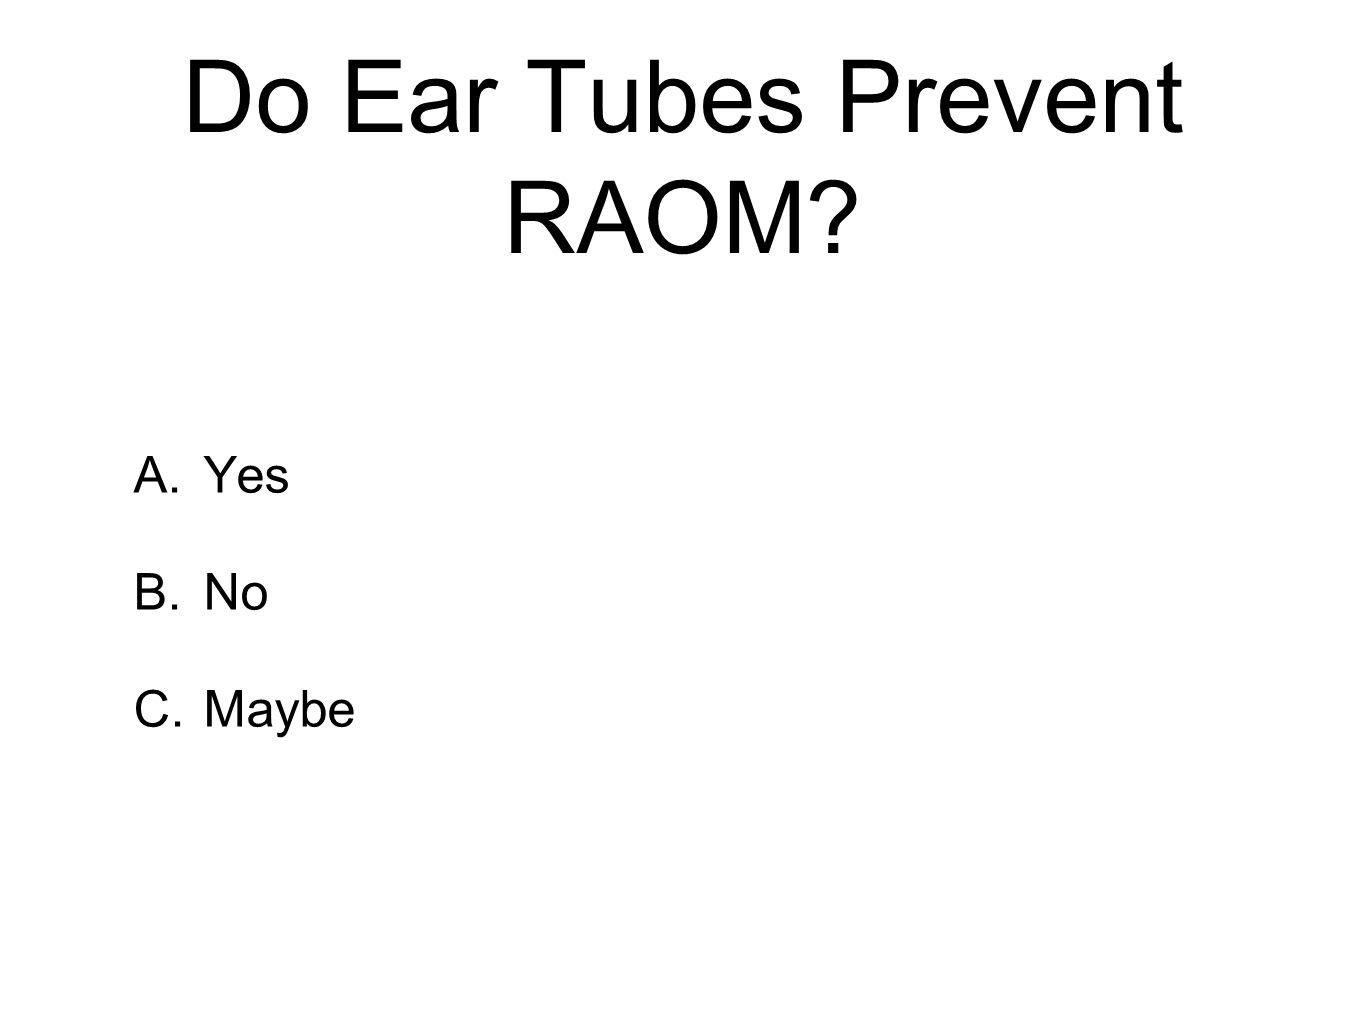 Do Ear Tubes Prevent RAOM